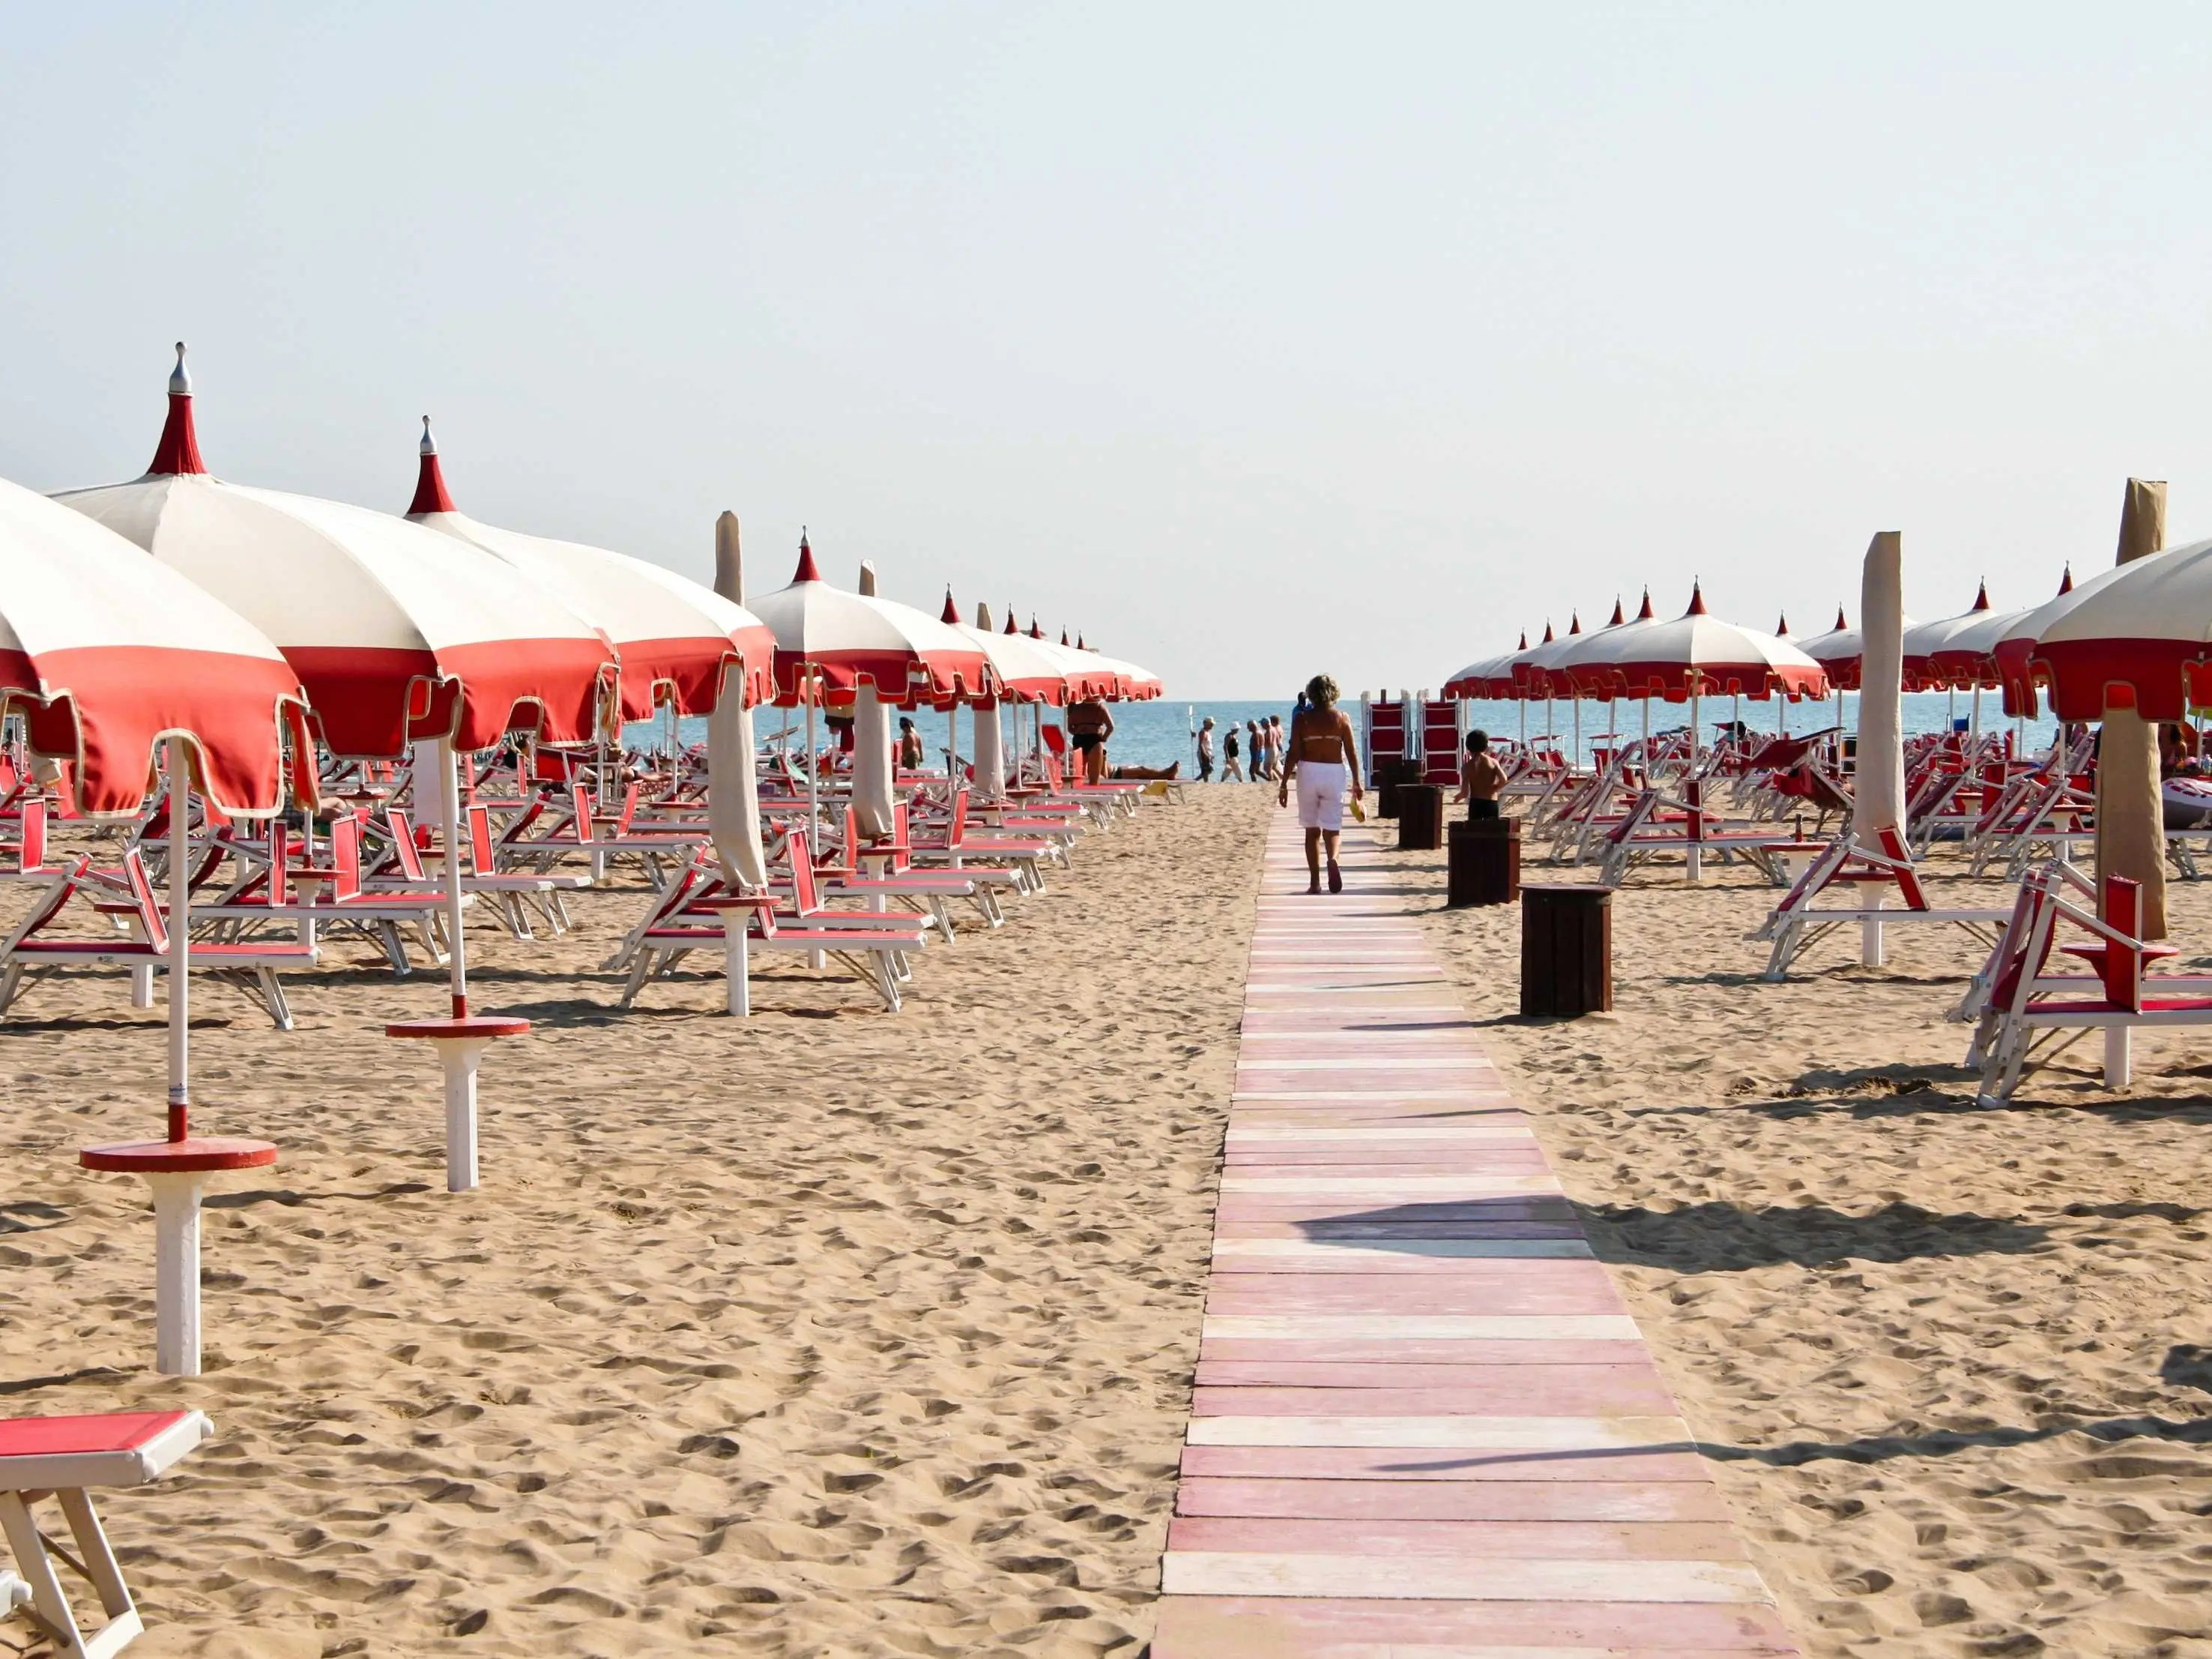 Bask in the sun at the beaches of Rimini.